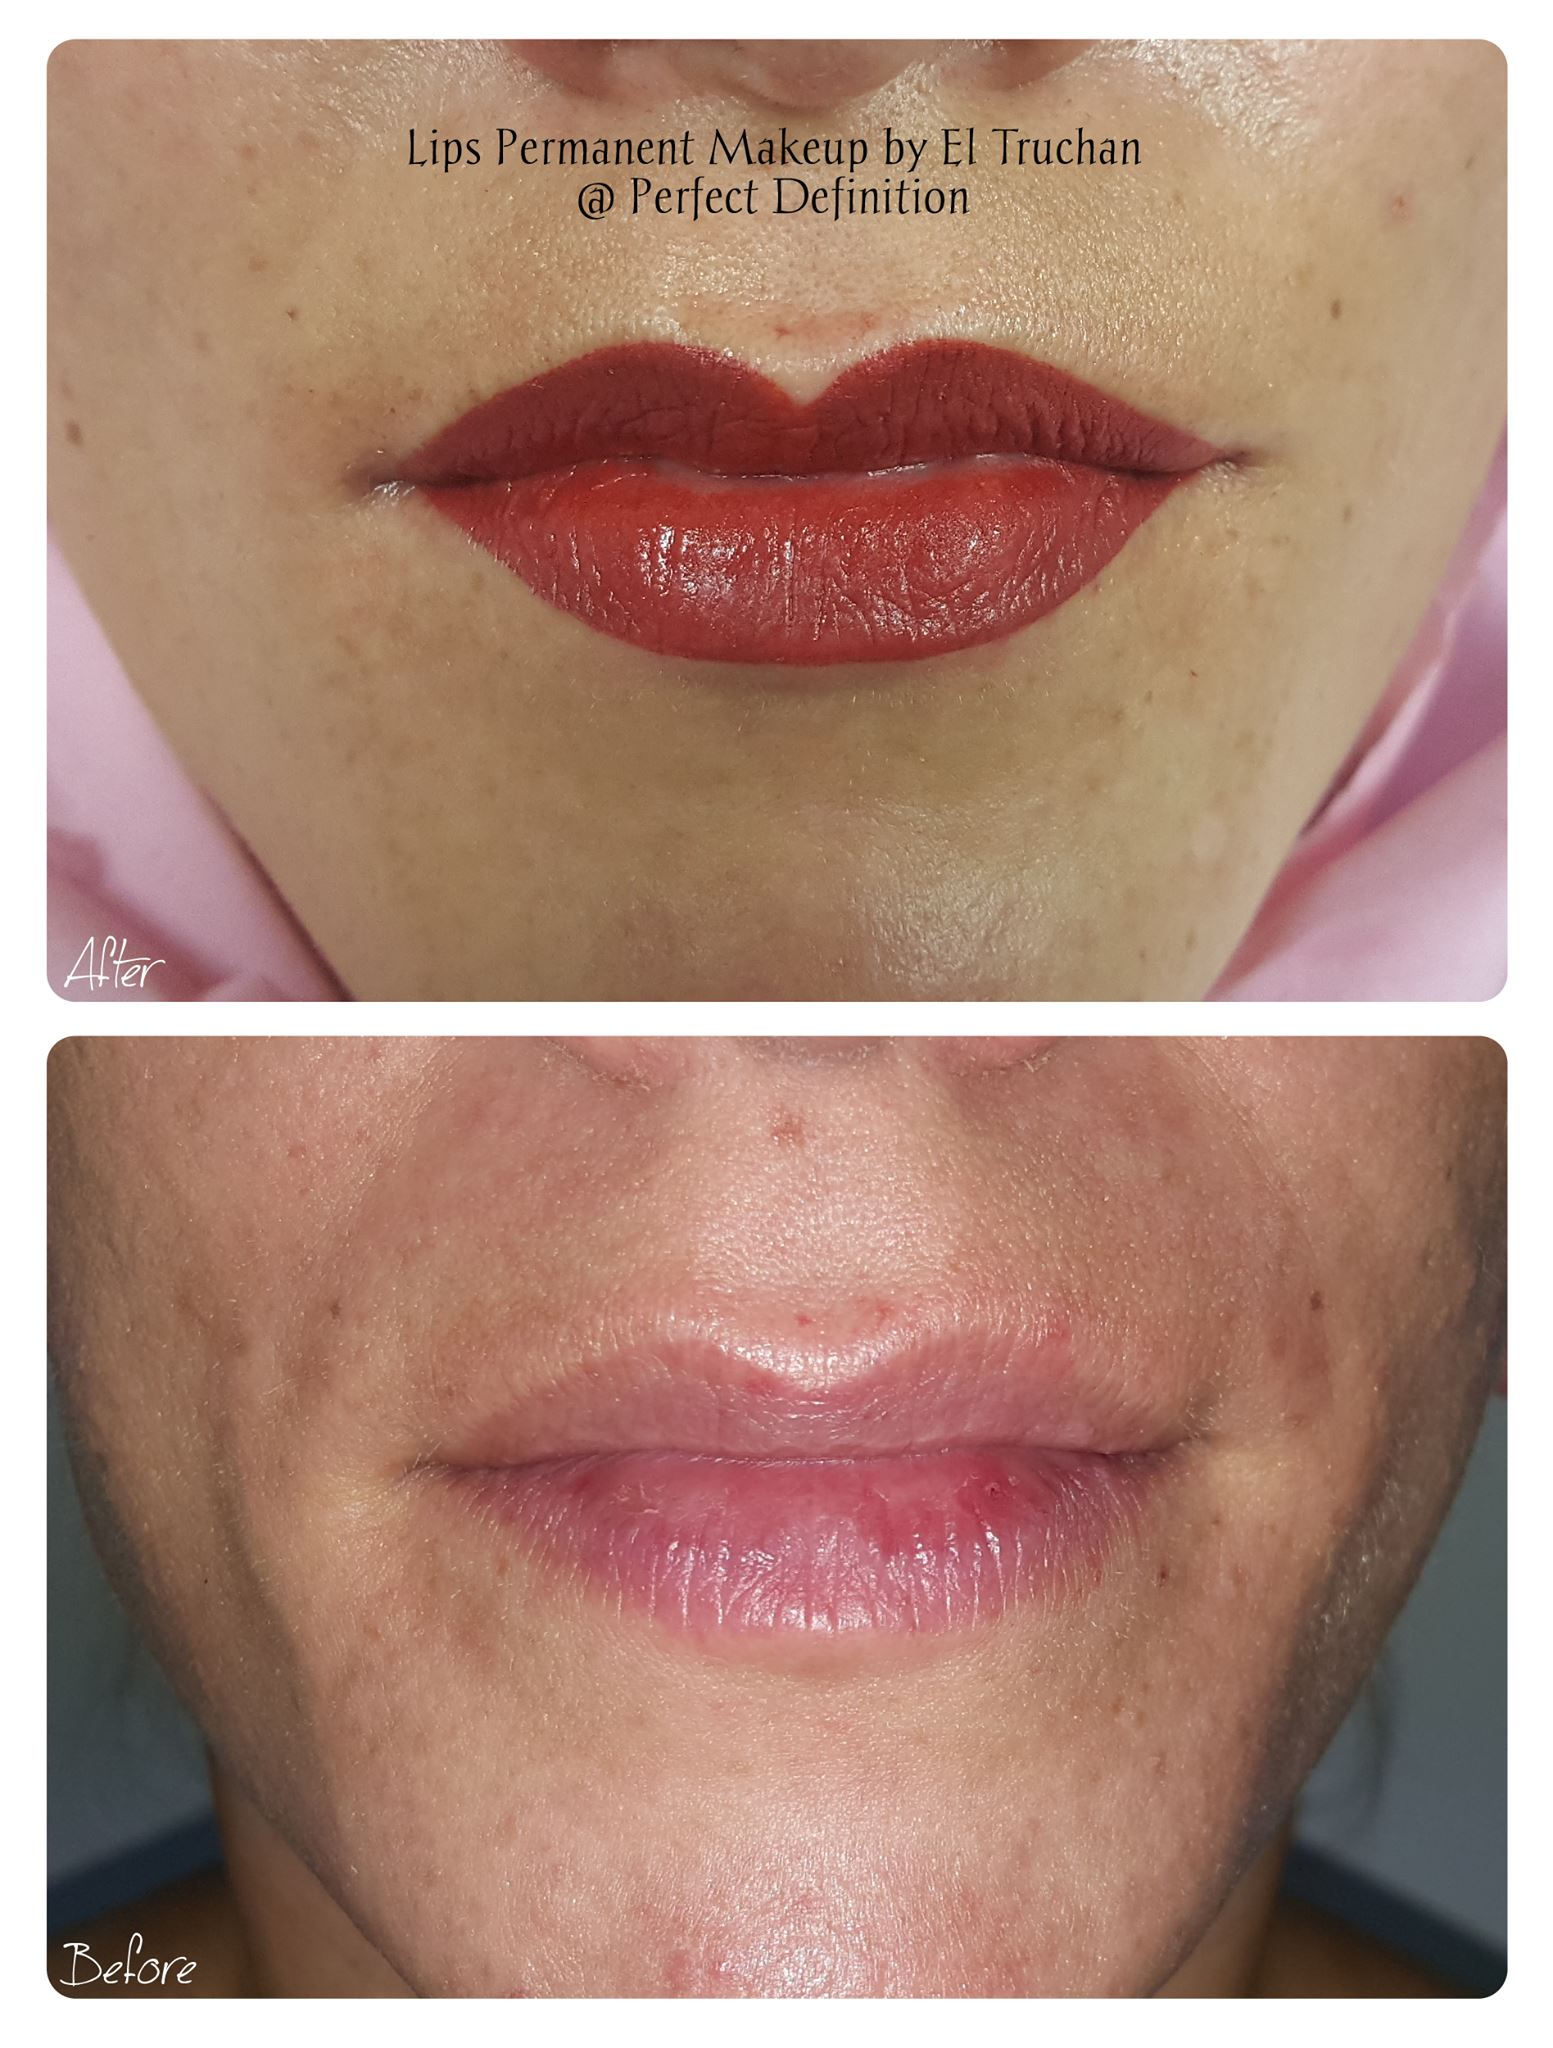 Lips Permanent Makeup by El Truchan